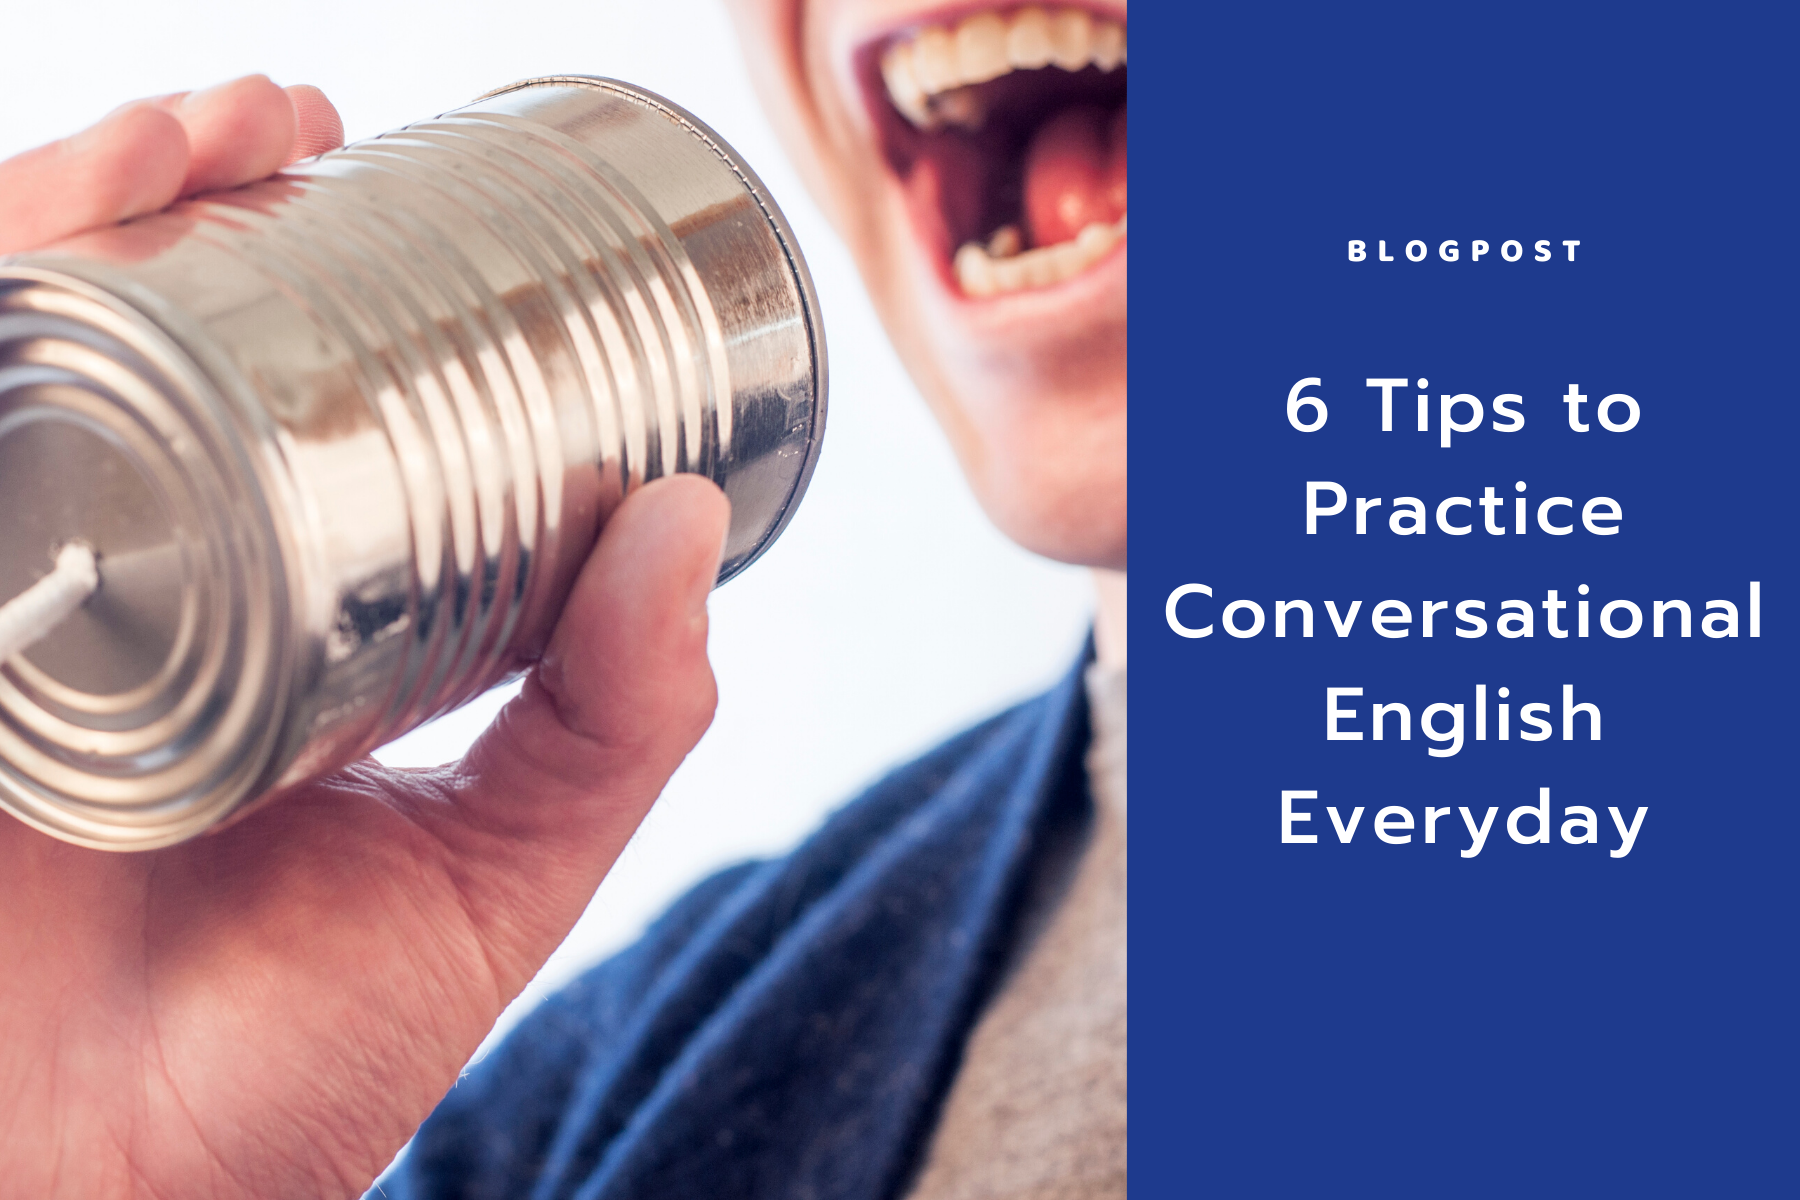 6 Tips to Practice Conversational English Everyday